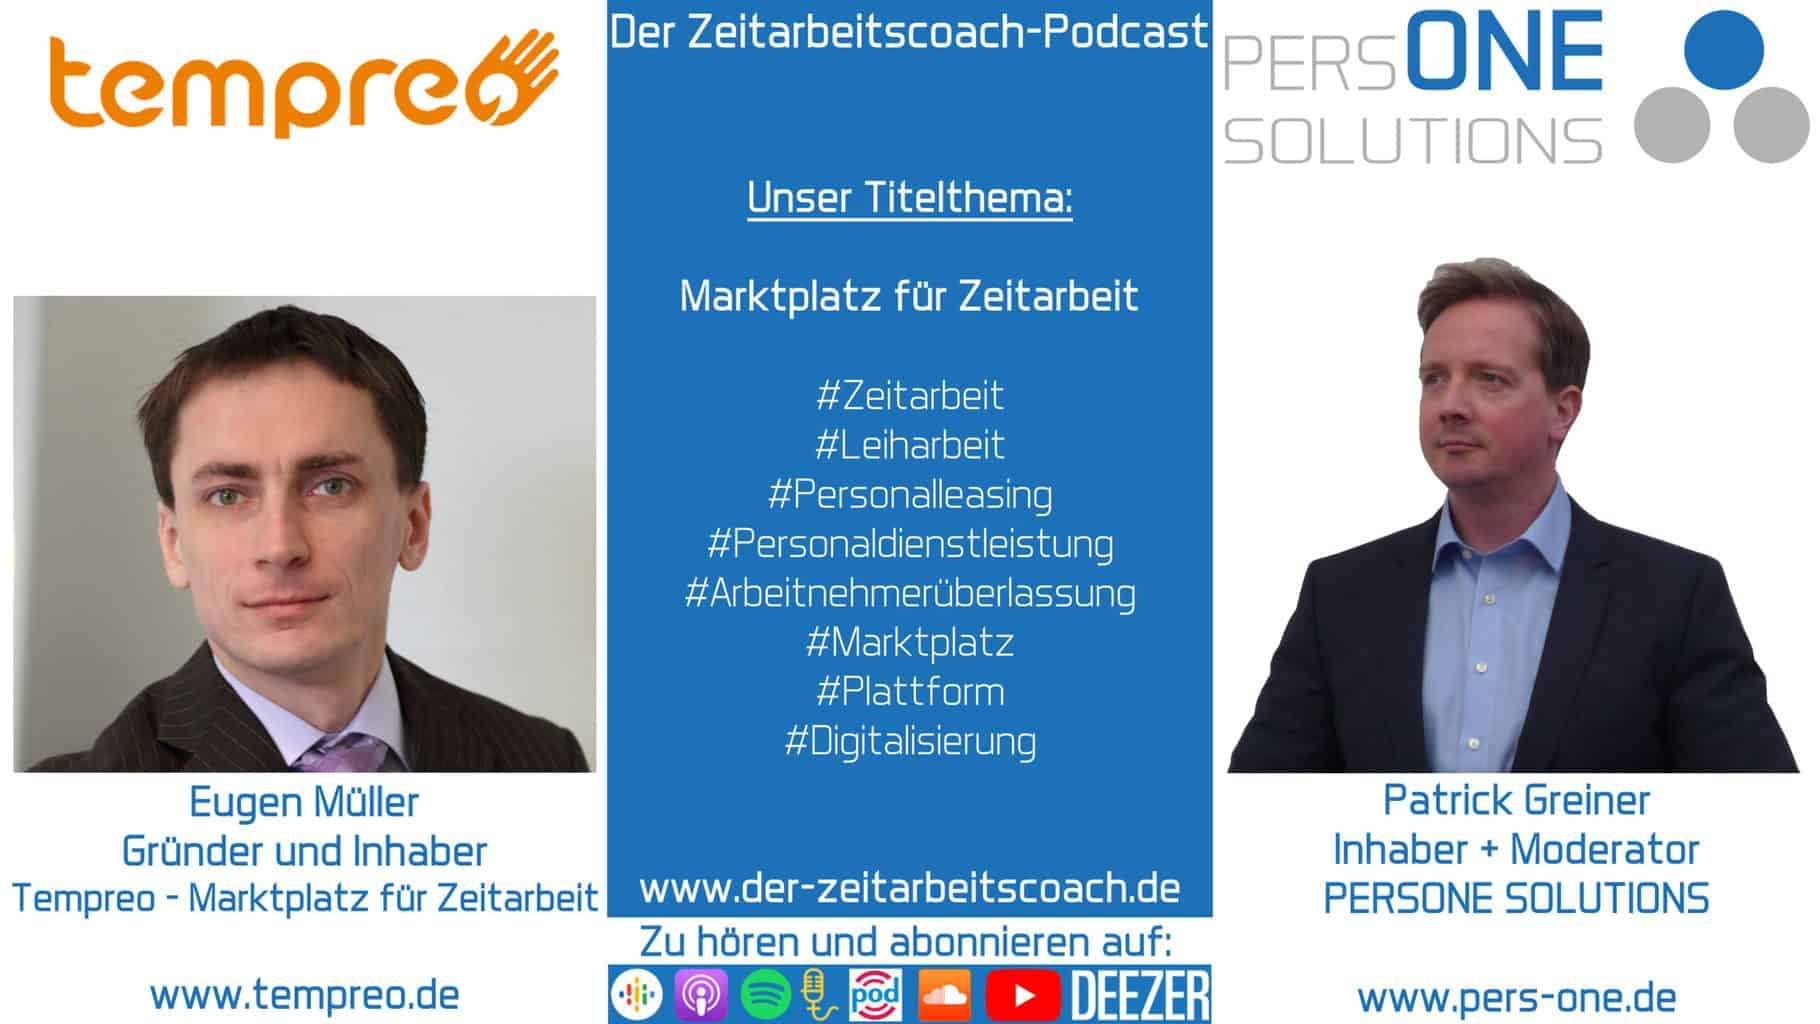 Müller, Eugen_tempreo_Podcast Grafik-SM Interview_Zeitarbeitscoach-Podcast